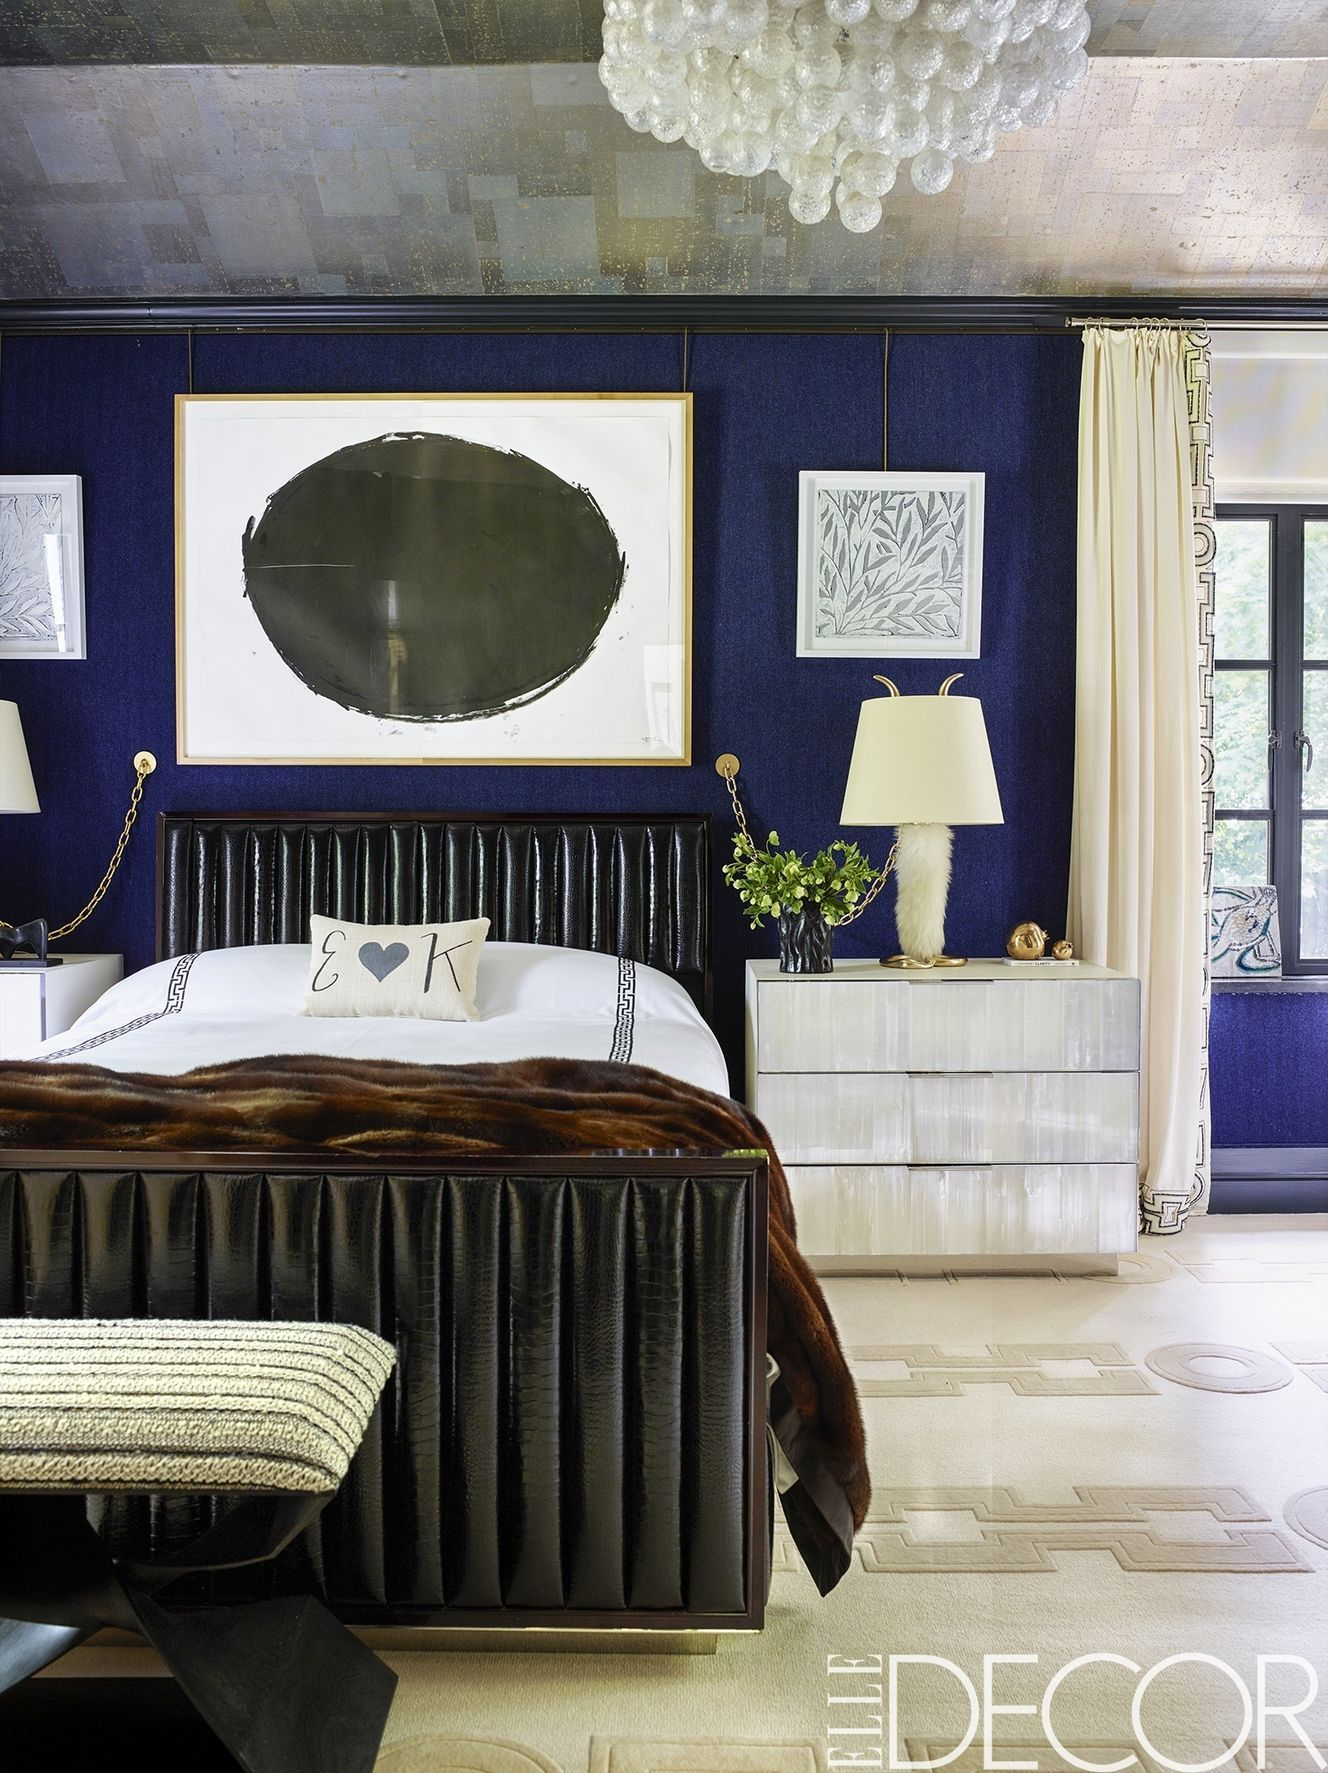 & 36 Best Blue Rooms - Ideas For Decorating With Blue